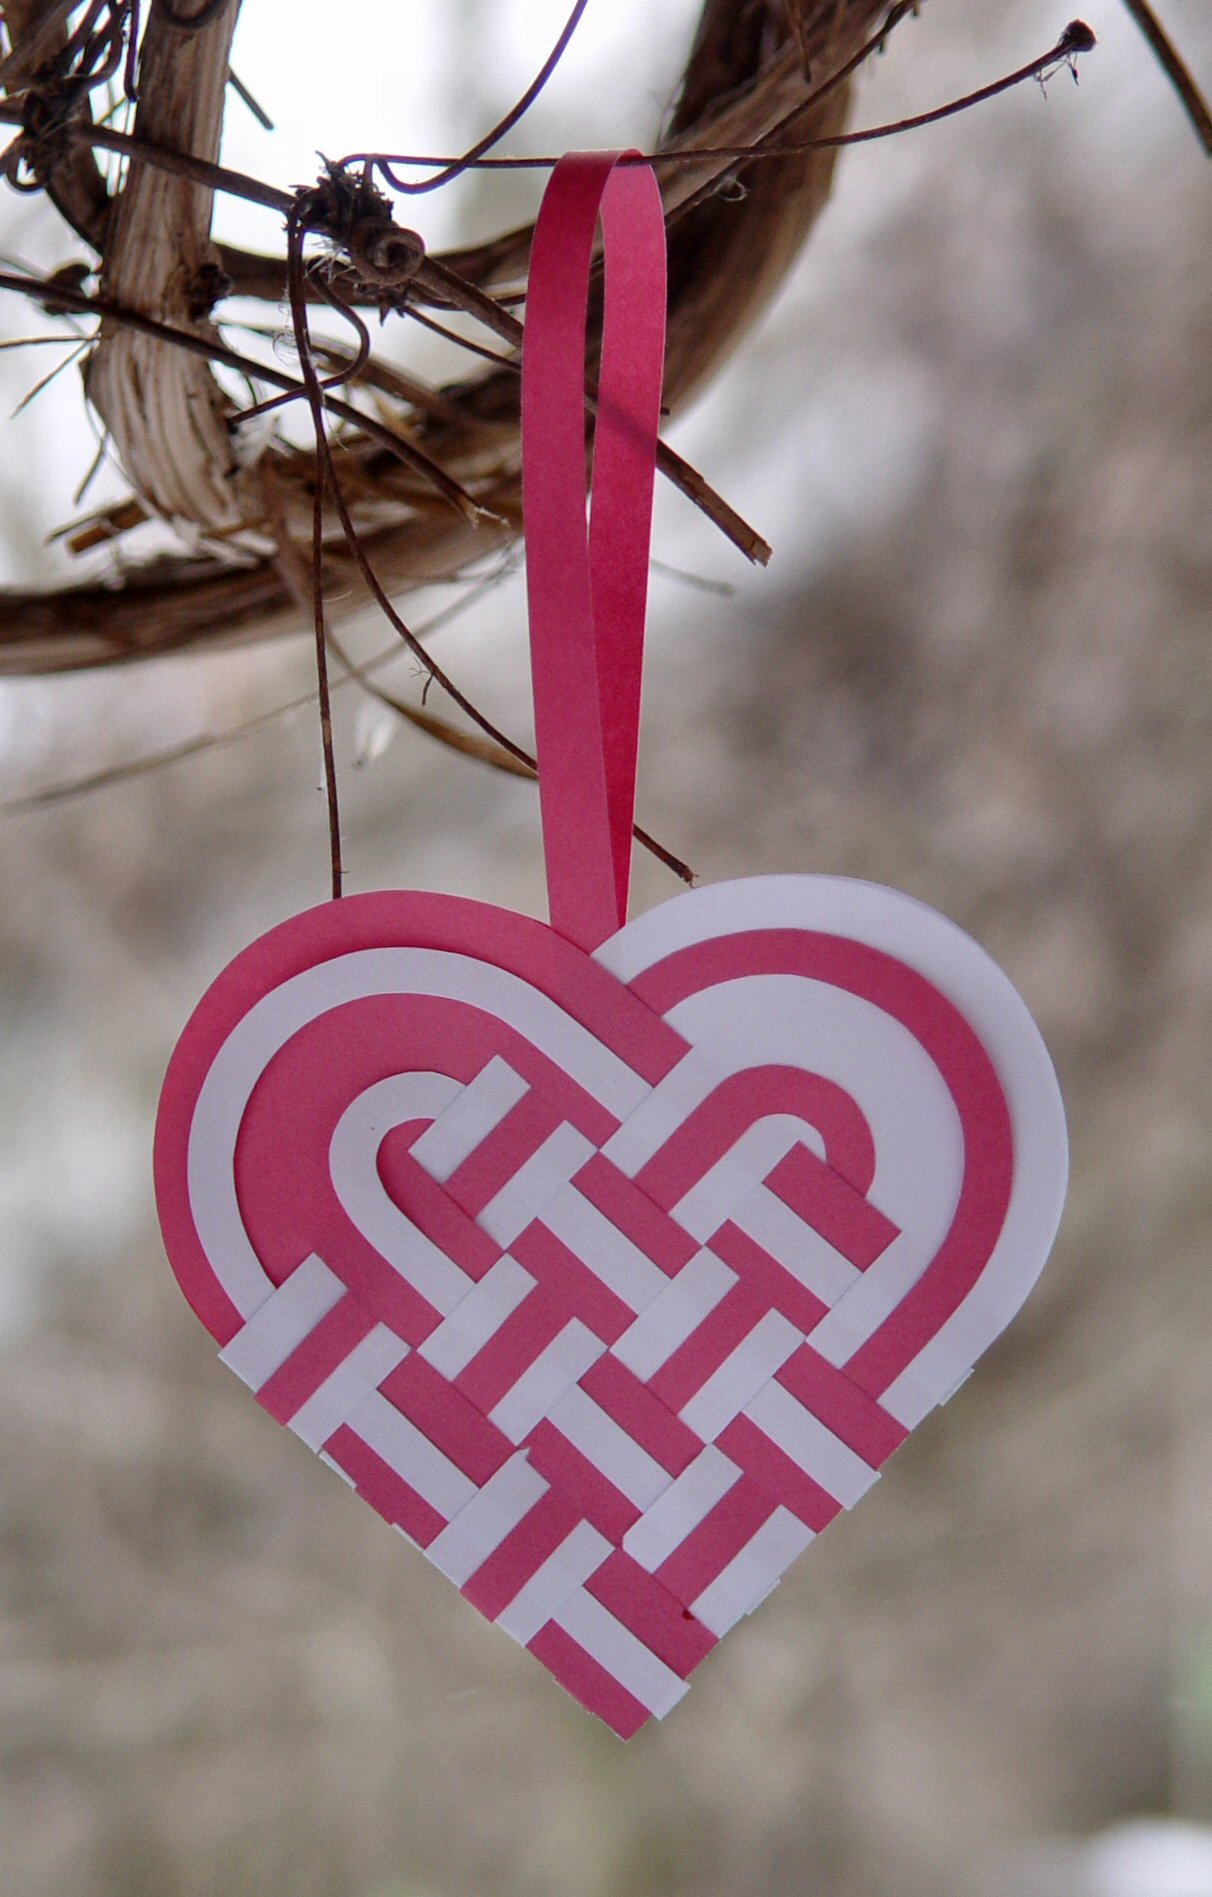 How to weave a danish heart basket : Paper heart project tutorials the crafty stalker